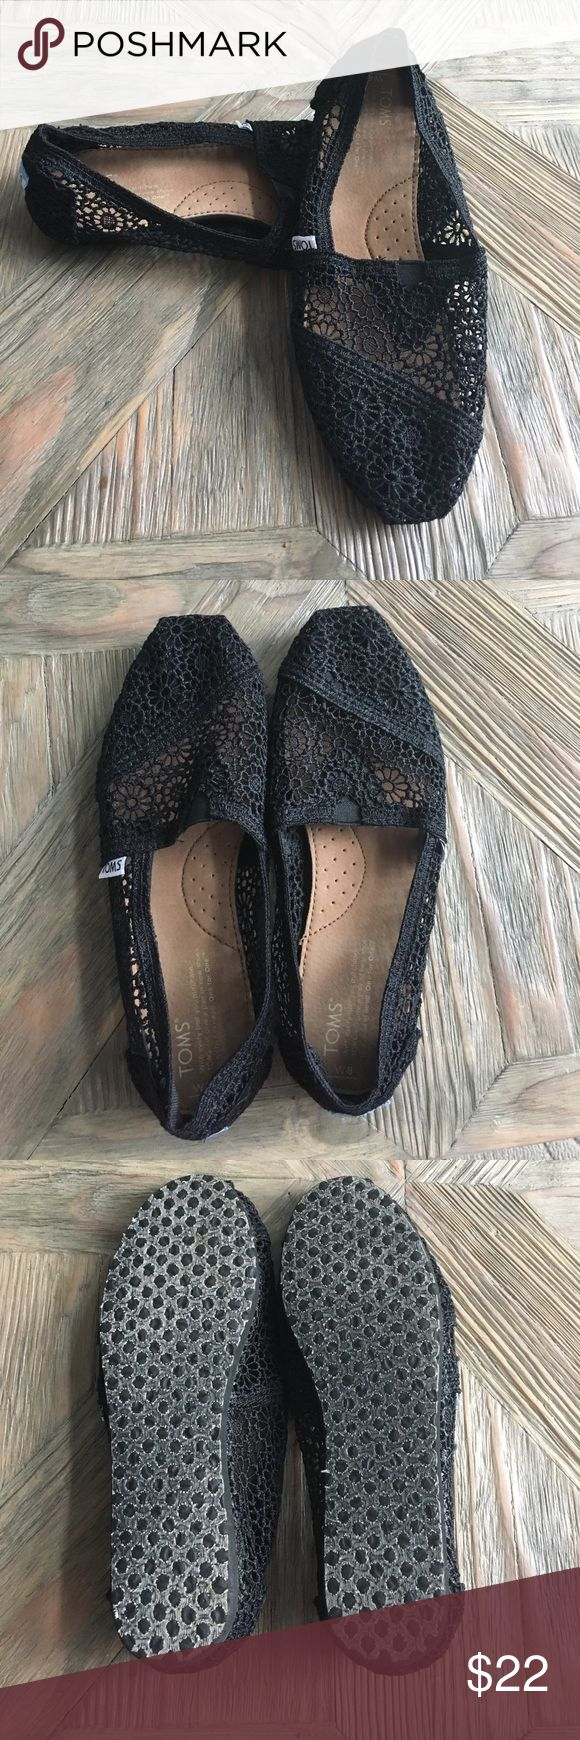 Black Lace Toms Black lace Toms. Worn maybe twice, excellent condition and super comfy! TOMS Shoes Flats & Loafers